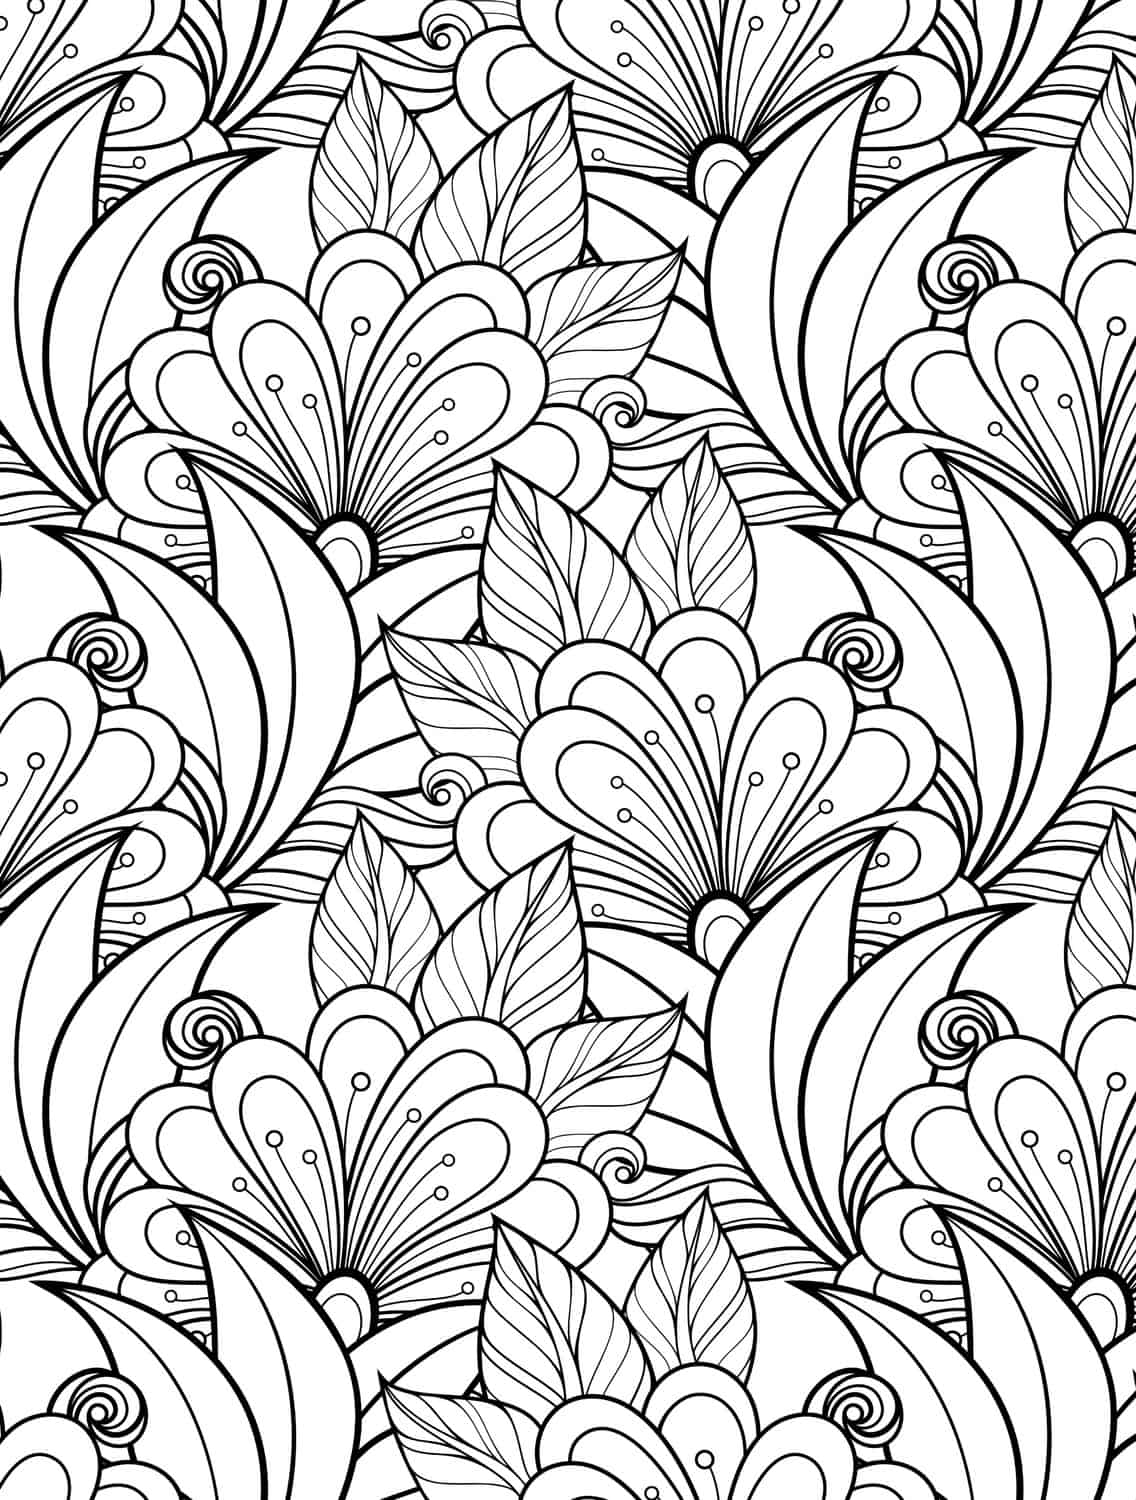 More Free Printable Adult Coloring Pages Page 7 of Nerdy